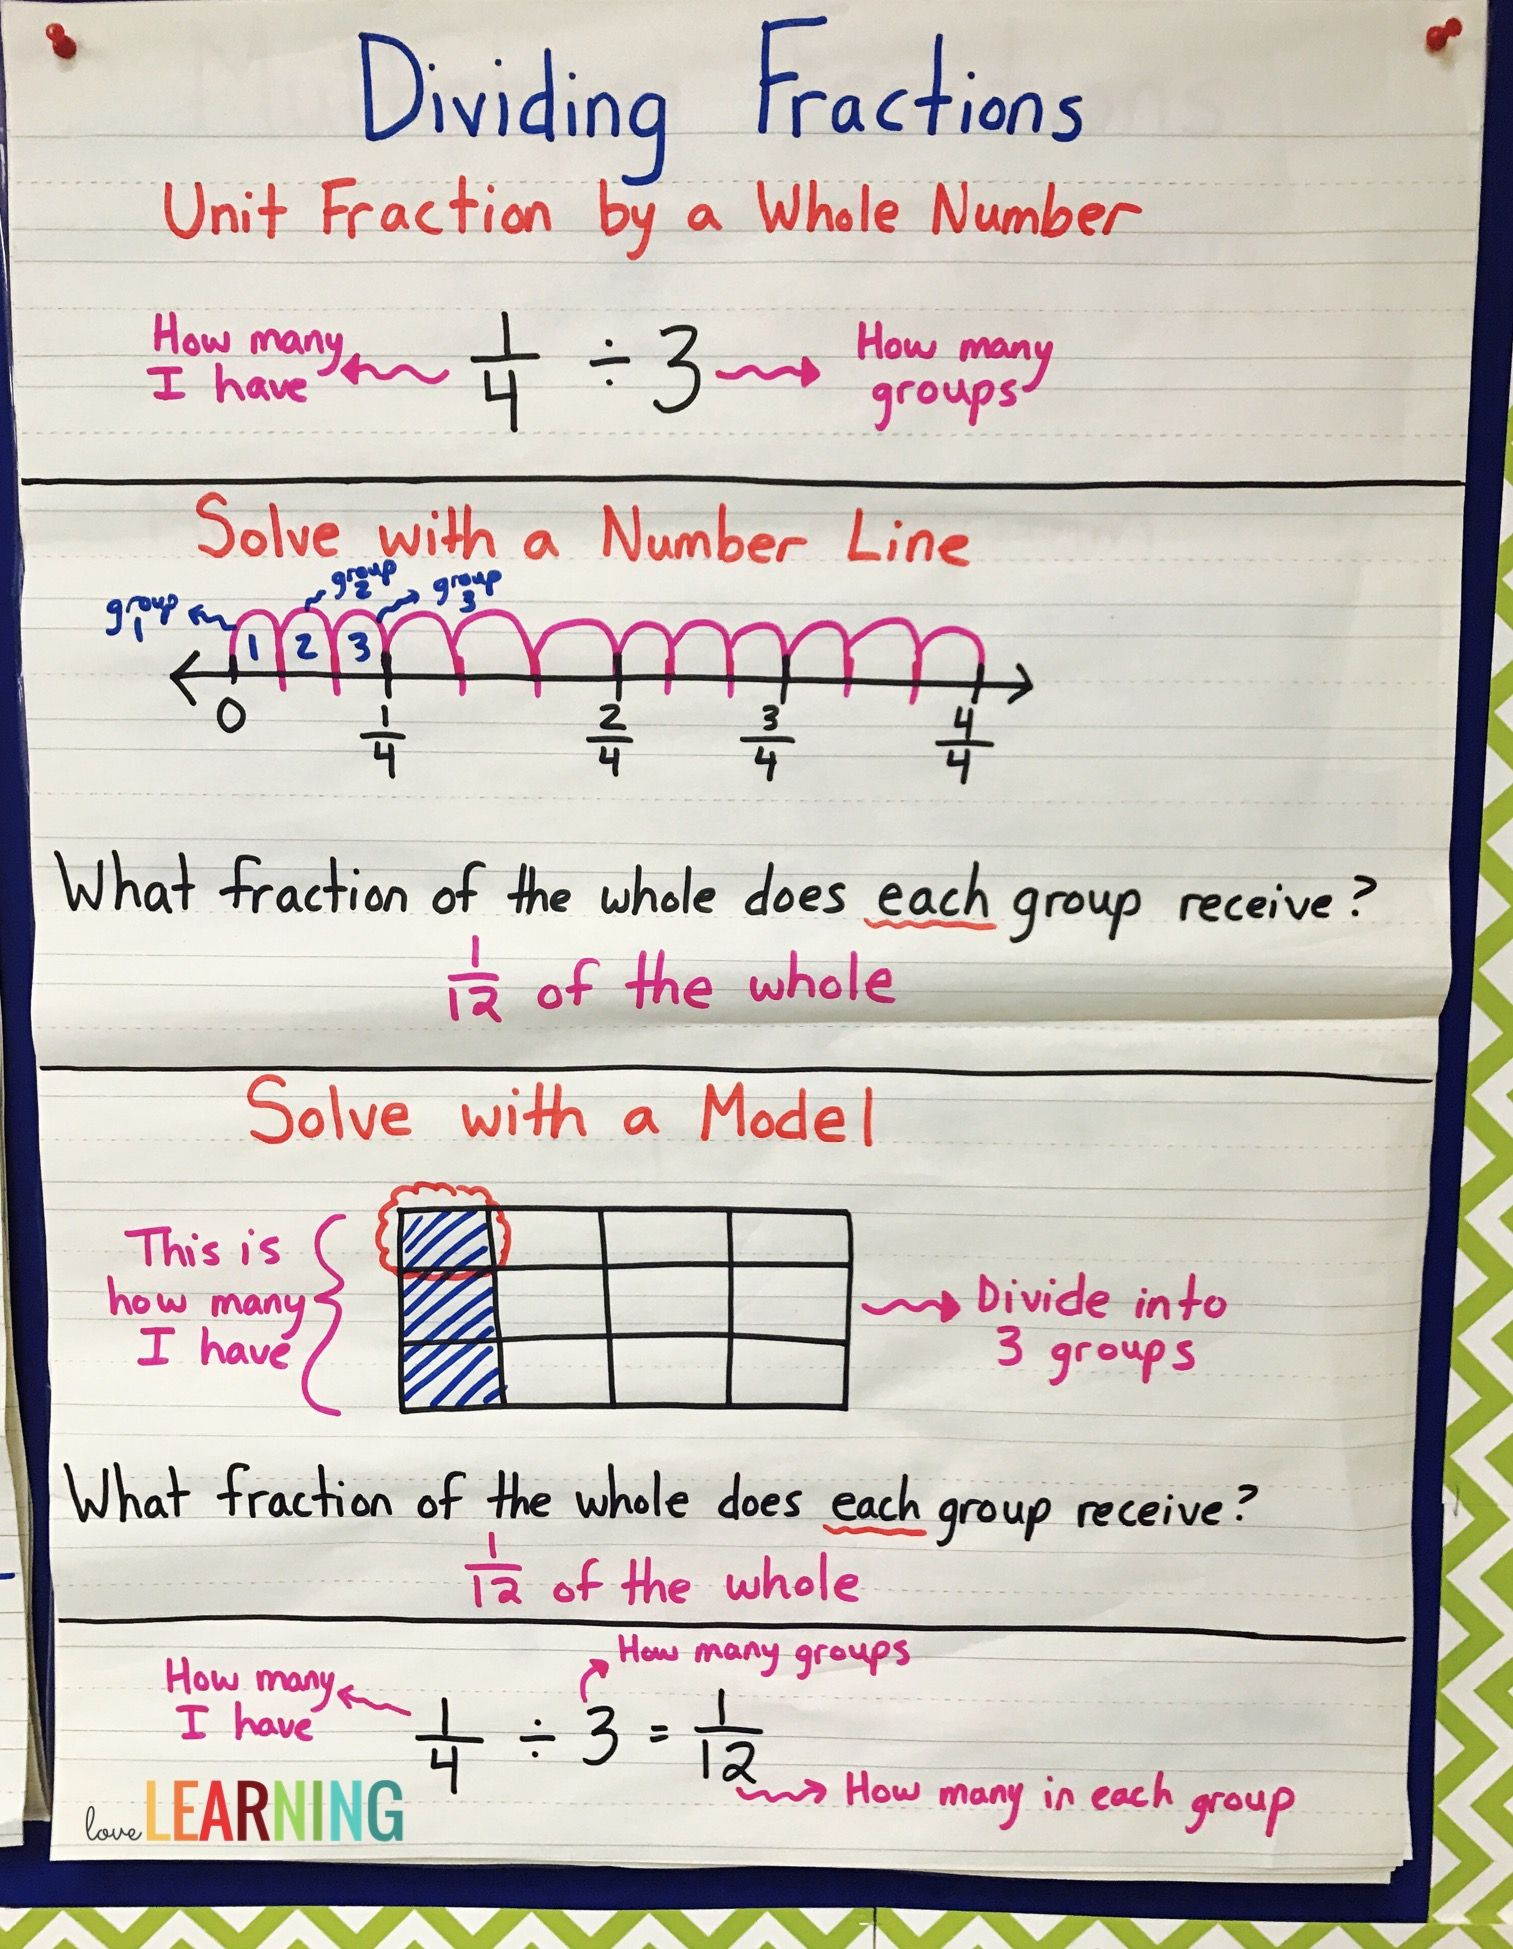 Dividing Unit Fractions By Whole Numbers Worksheet ...